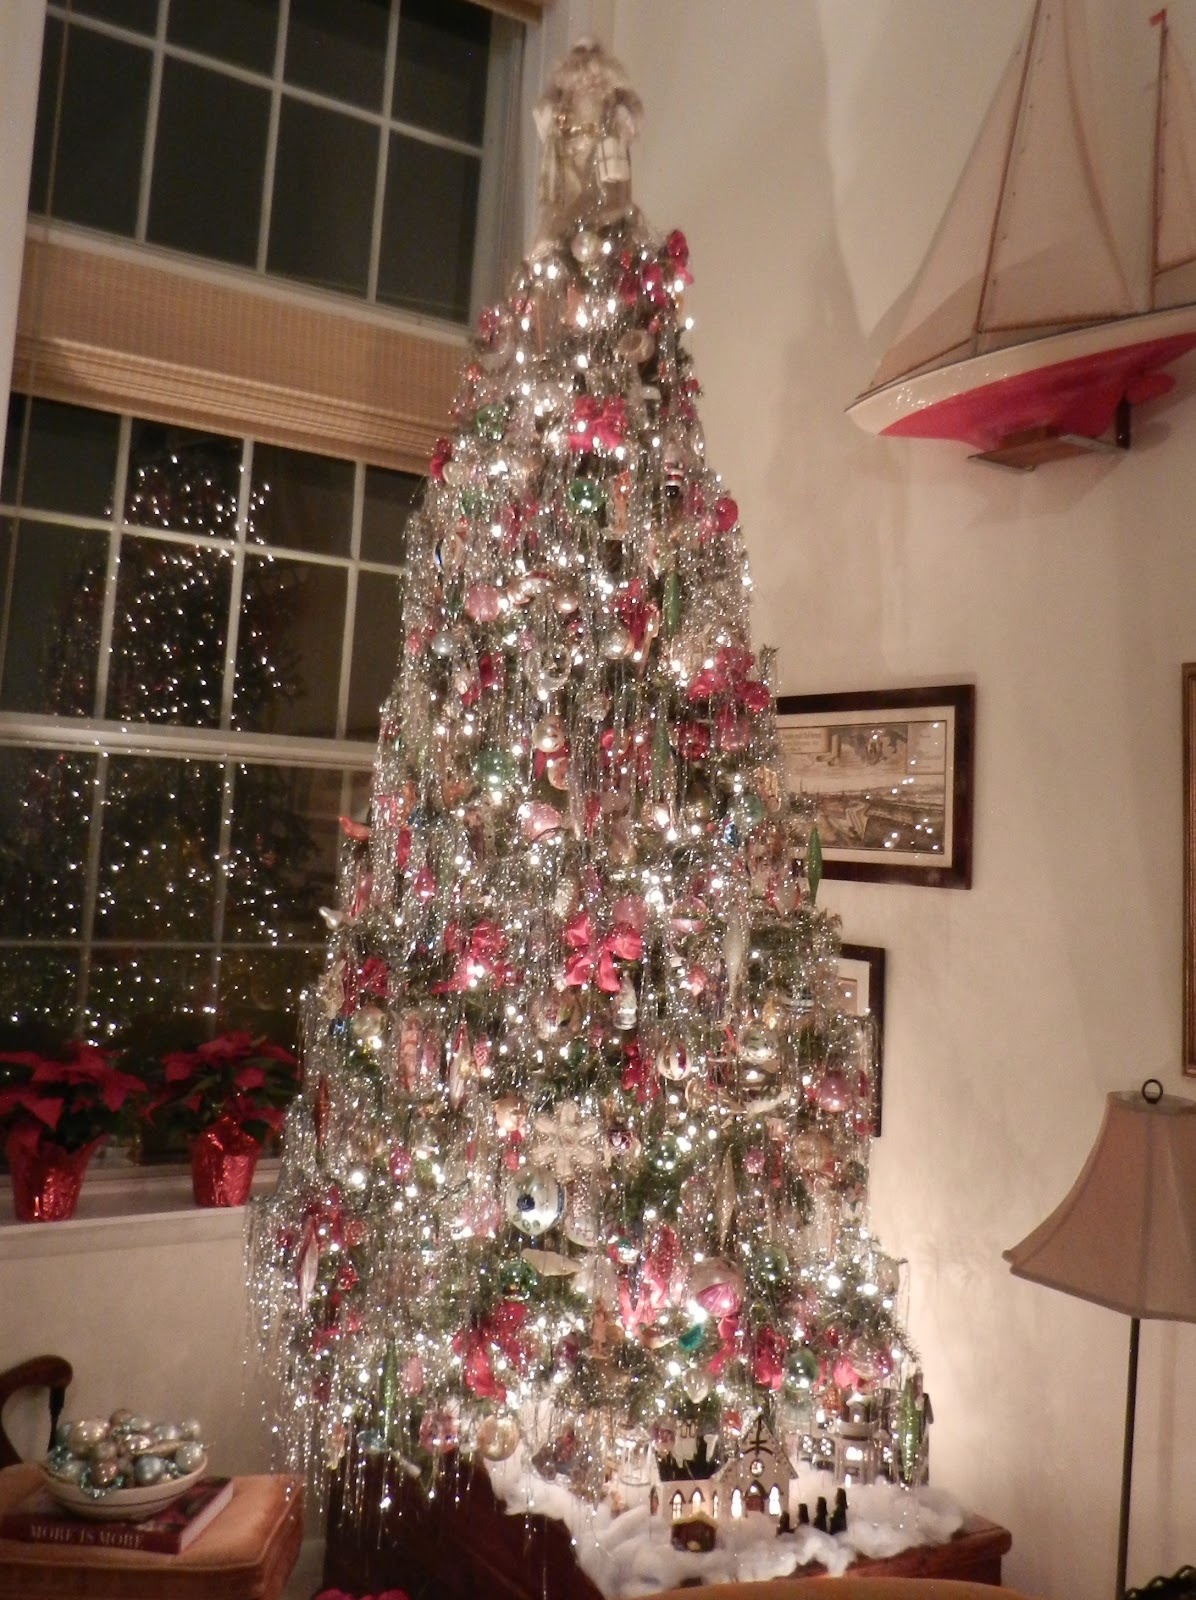 40 Old Fashioned Christmas Tree Decorations Ideas  Decoration Love